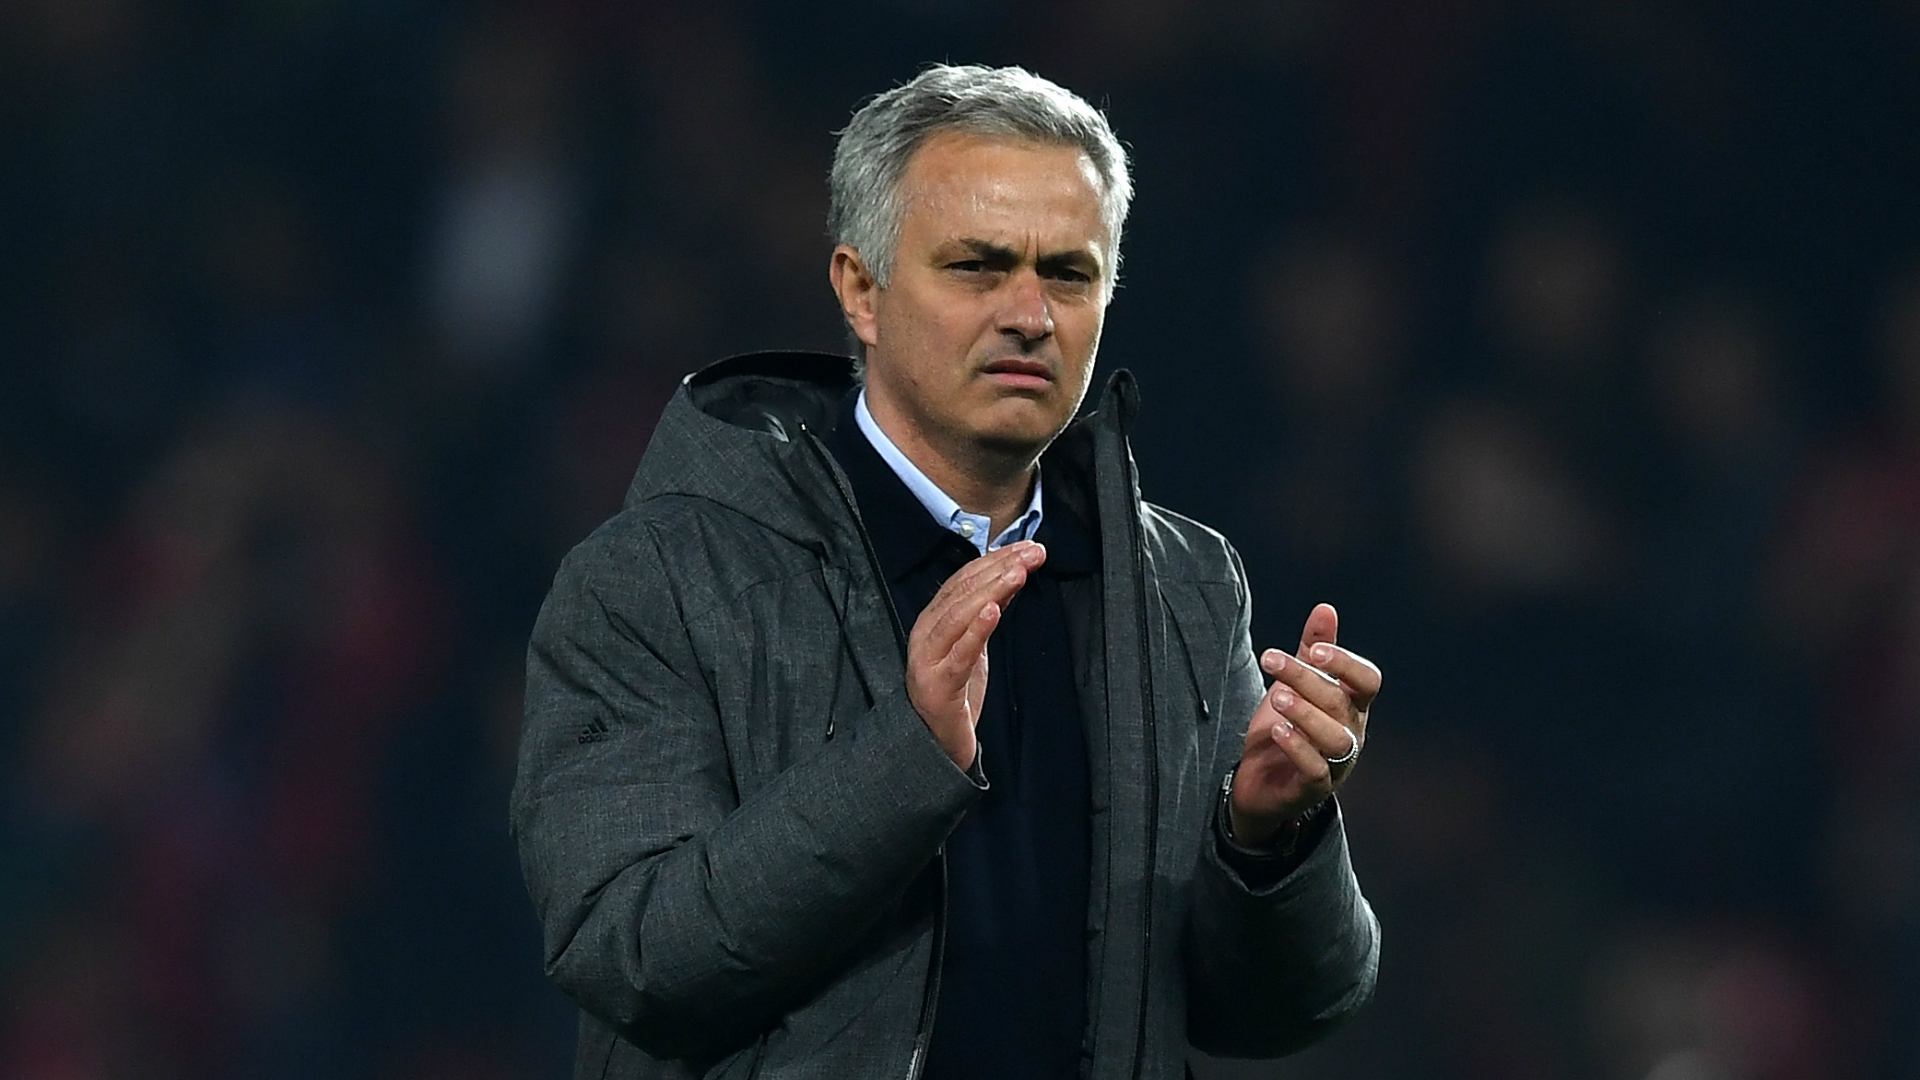 Mourinho is one of the most successful trainers in the world: Clop